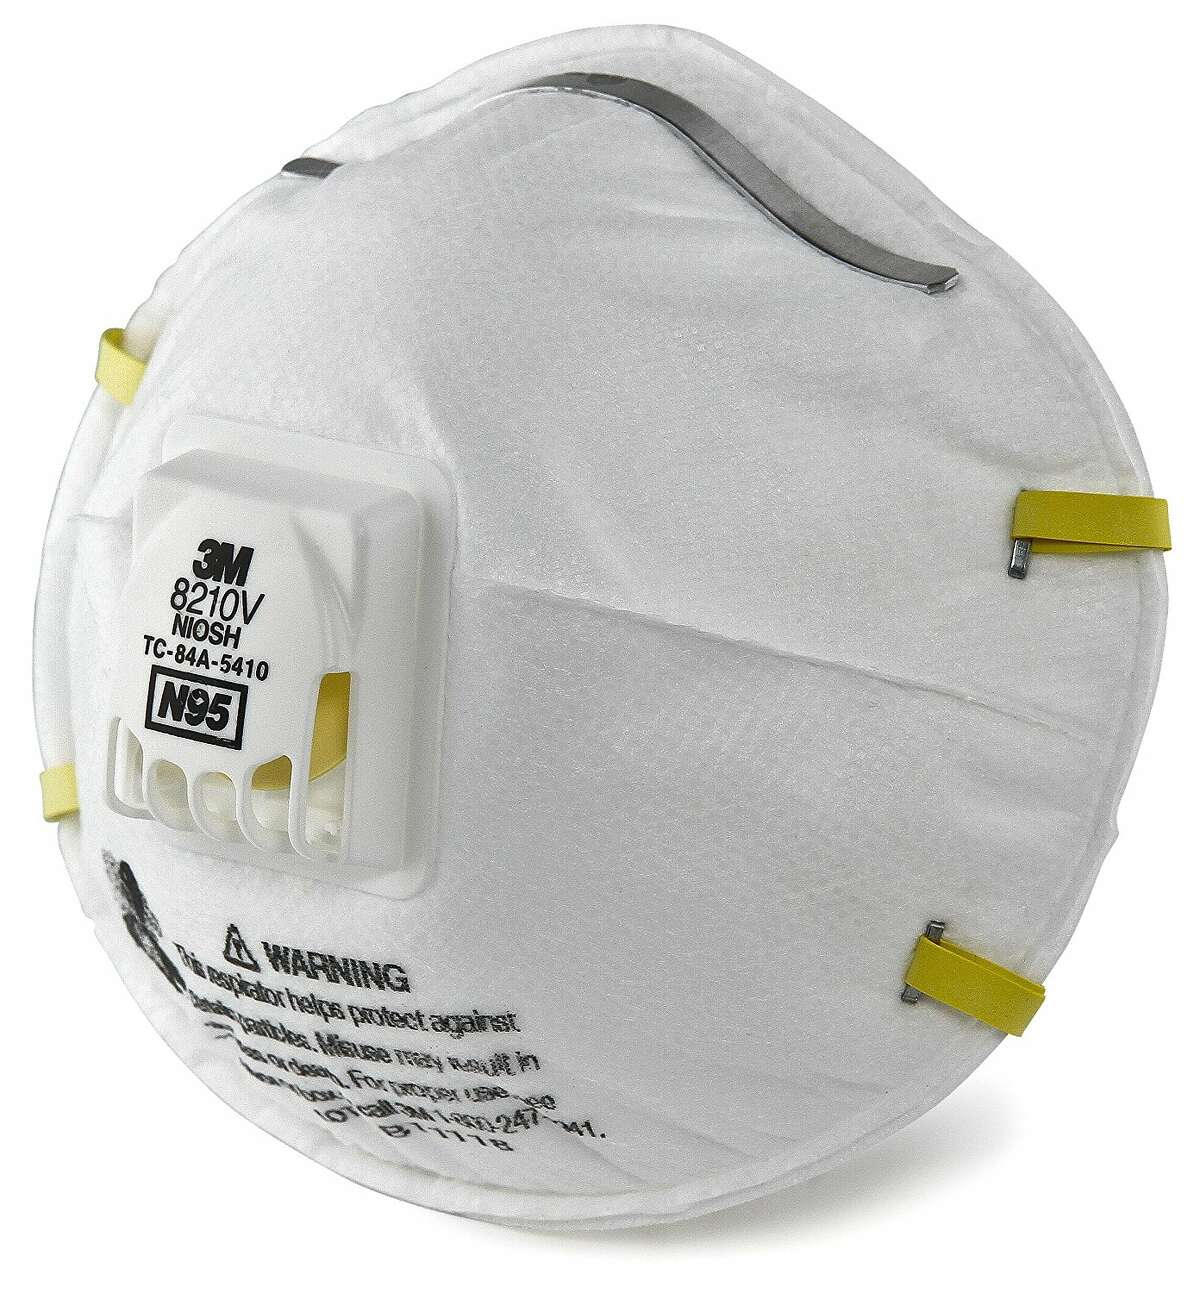 A particulate respirator like this one from 3M is recommended for filtering wildfire smoke. N95 is recommended for ease of breathing. Higher numbers like N100 or P100 that filter more are also fine, but may be harder to breathe through and more expensive.